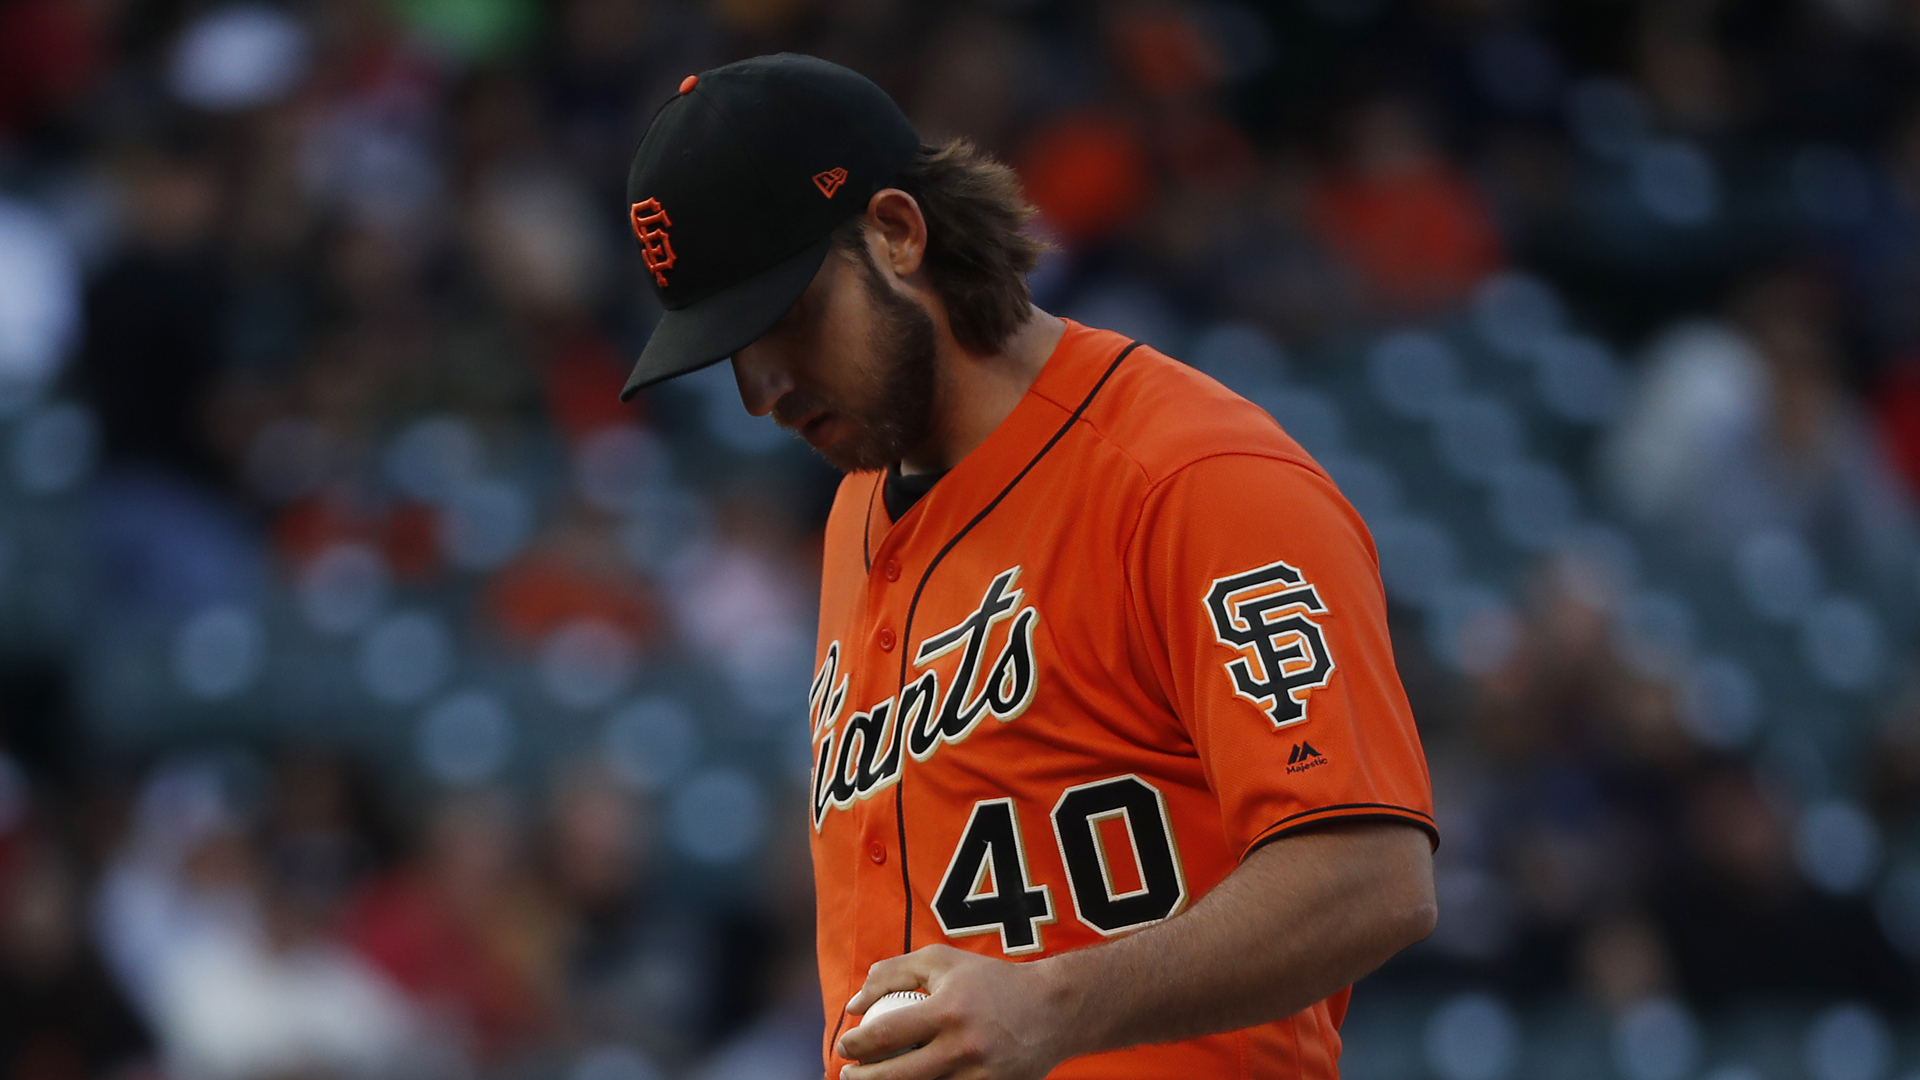 Bumgarner fractures pitching hand after being hit by line drive